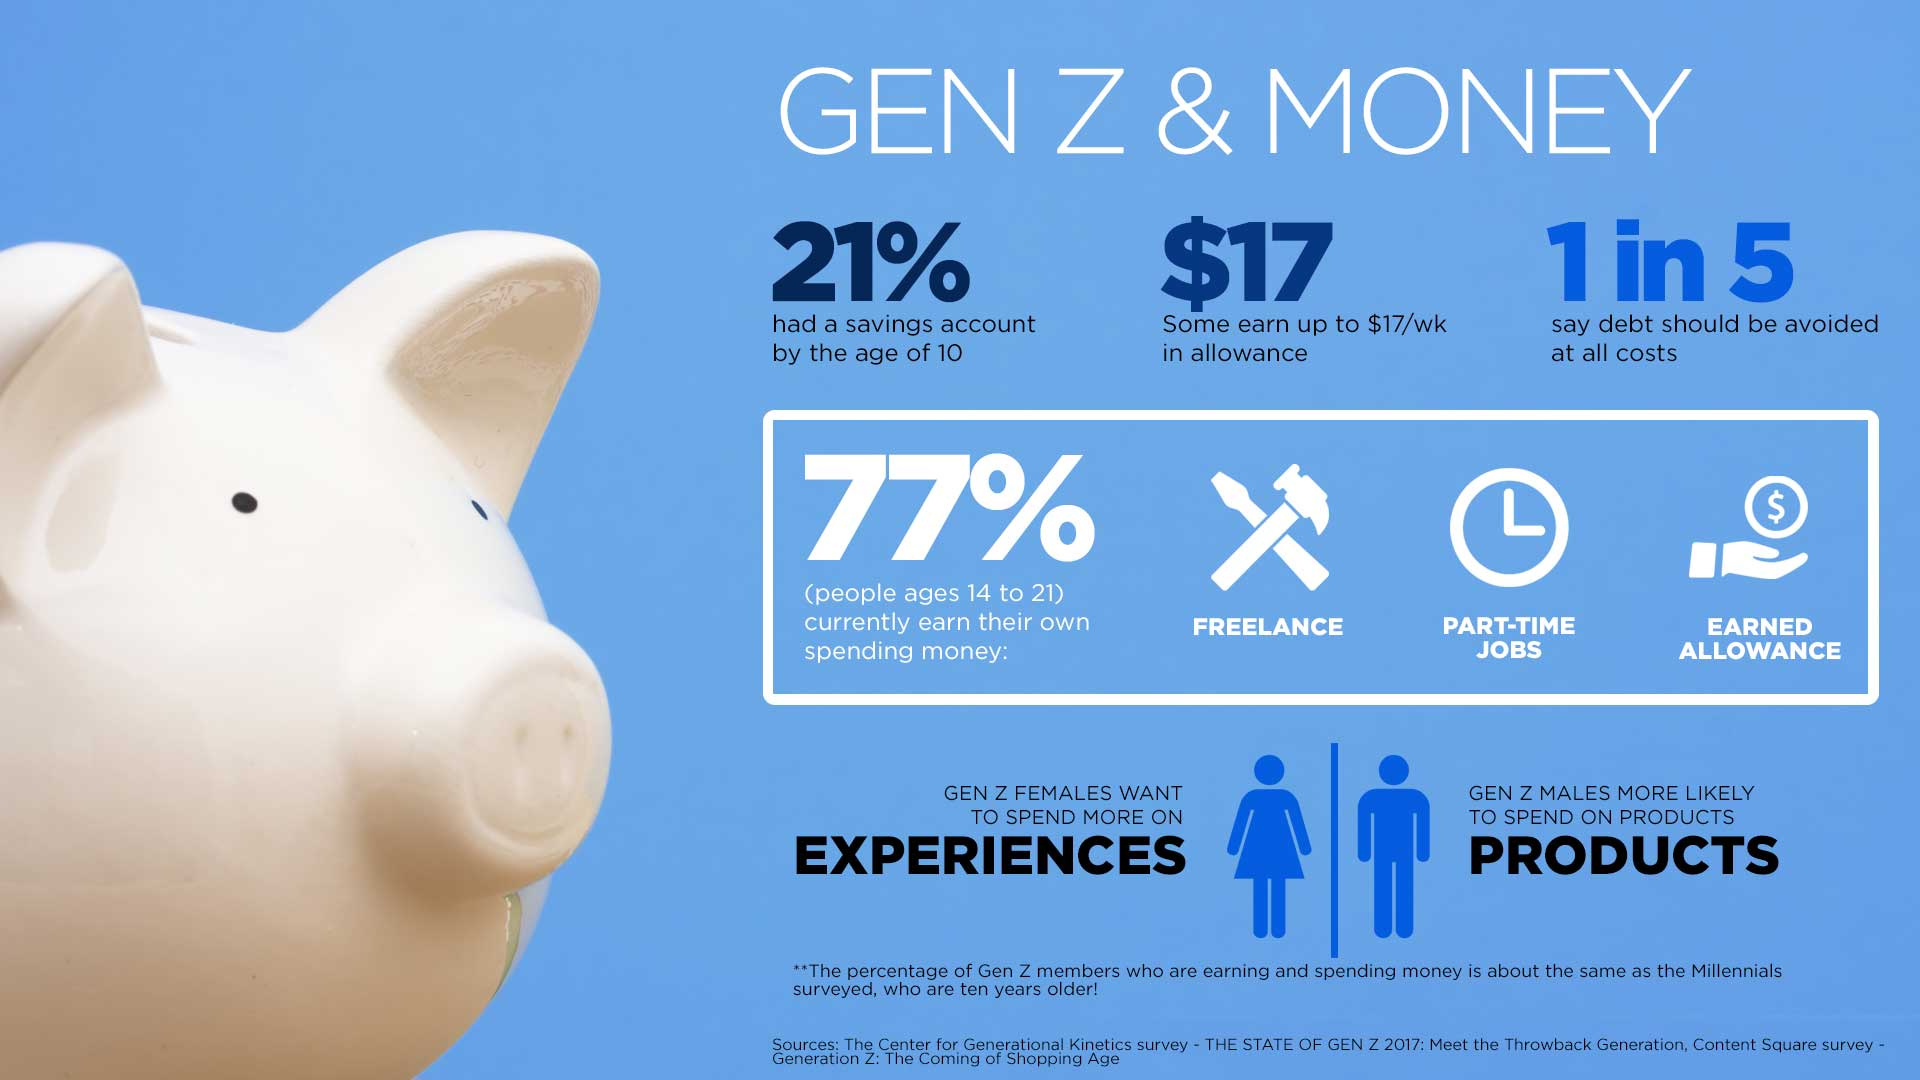 21% had a savings account by the age of 10 Some earn up to $17/wk in allowance 1 in 5 say debt should be avoided at all costs 77% (people ages 14 to 21) currently earn their own spending money: Freelance Part-time jobs Earned allowance Some earn up to $17/wk in allowance Gen Z females want to spend more on experiences Gen Z males more likely to spend on products **The percentage of Gen Z members who are earning and spending money is about the same as the Millennials surveyed, who are ten years older!